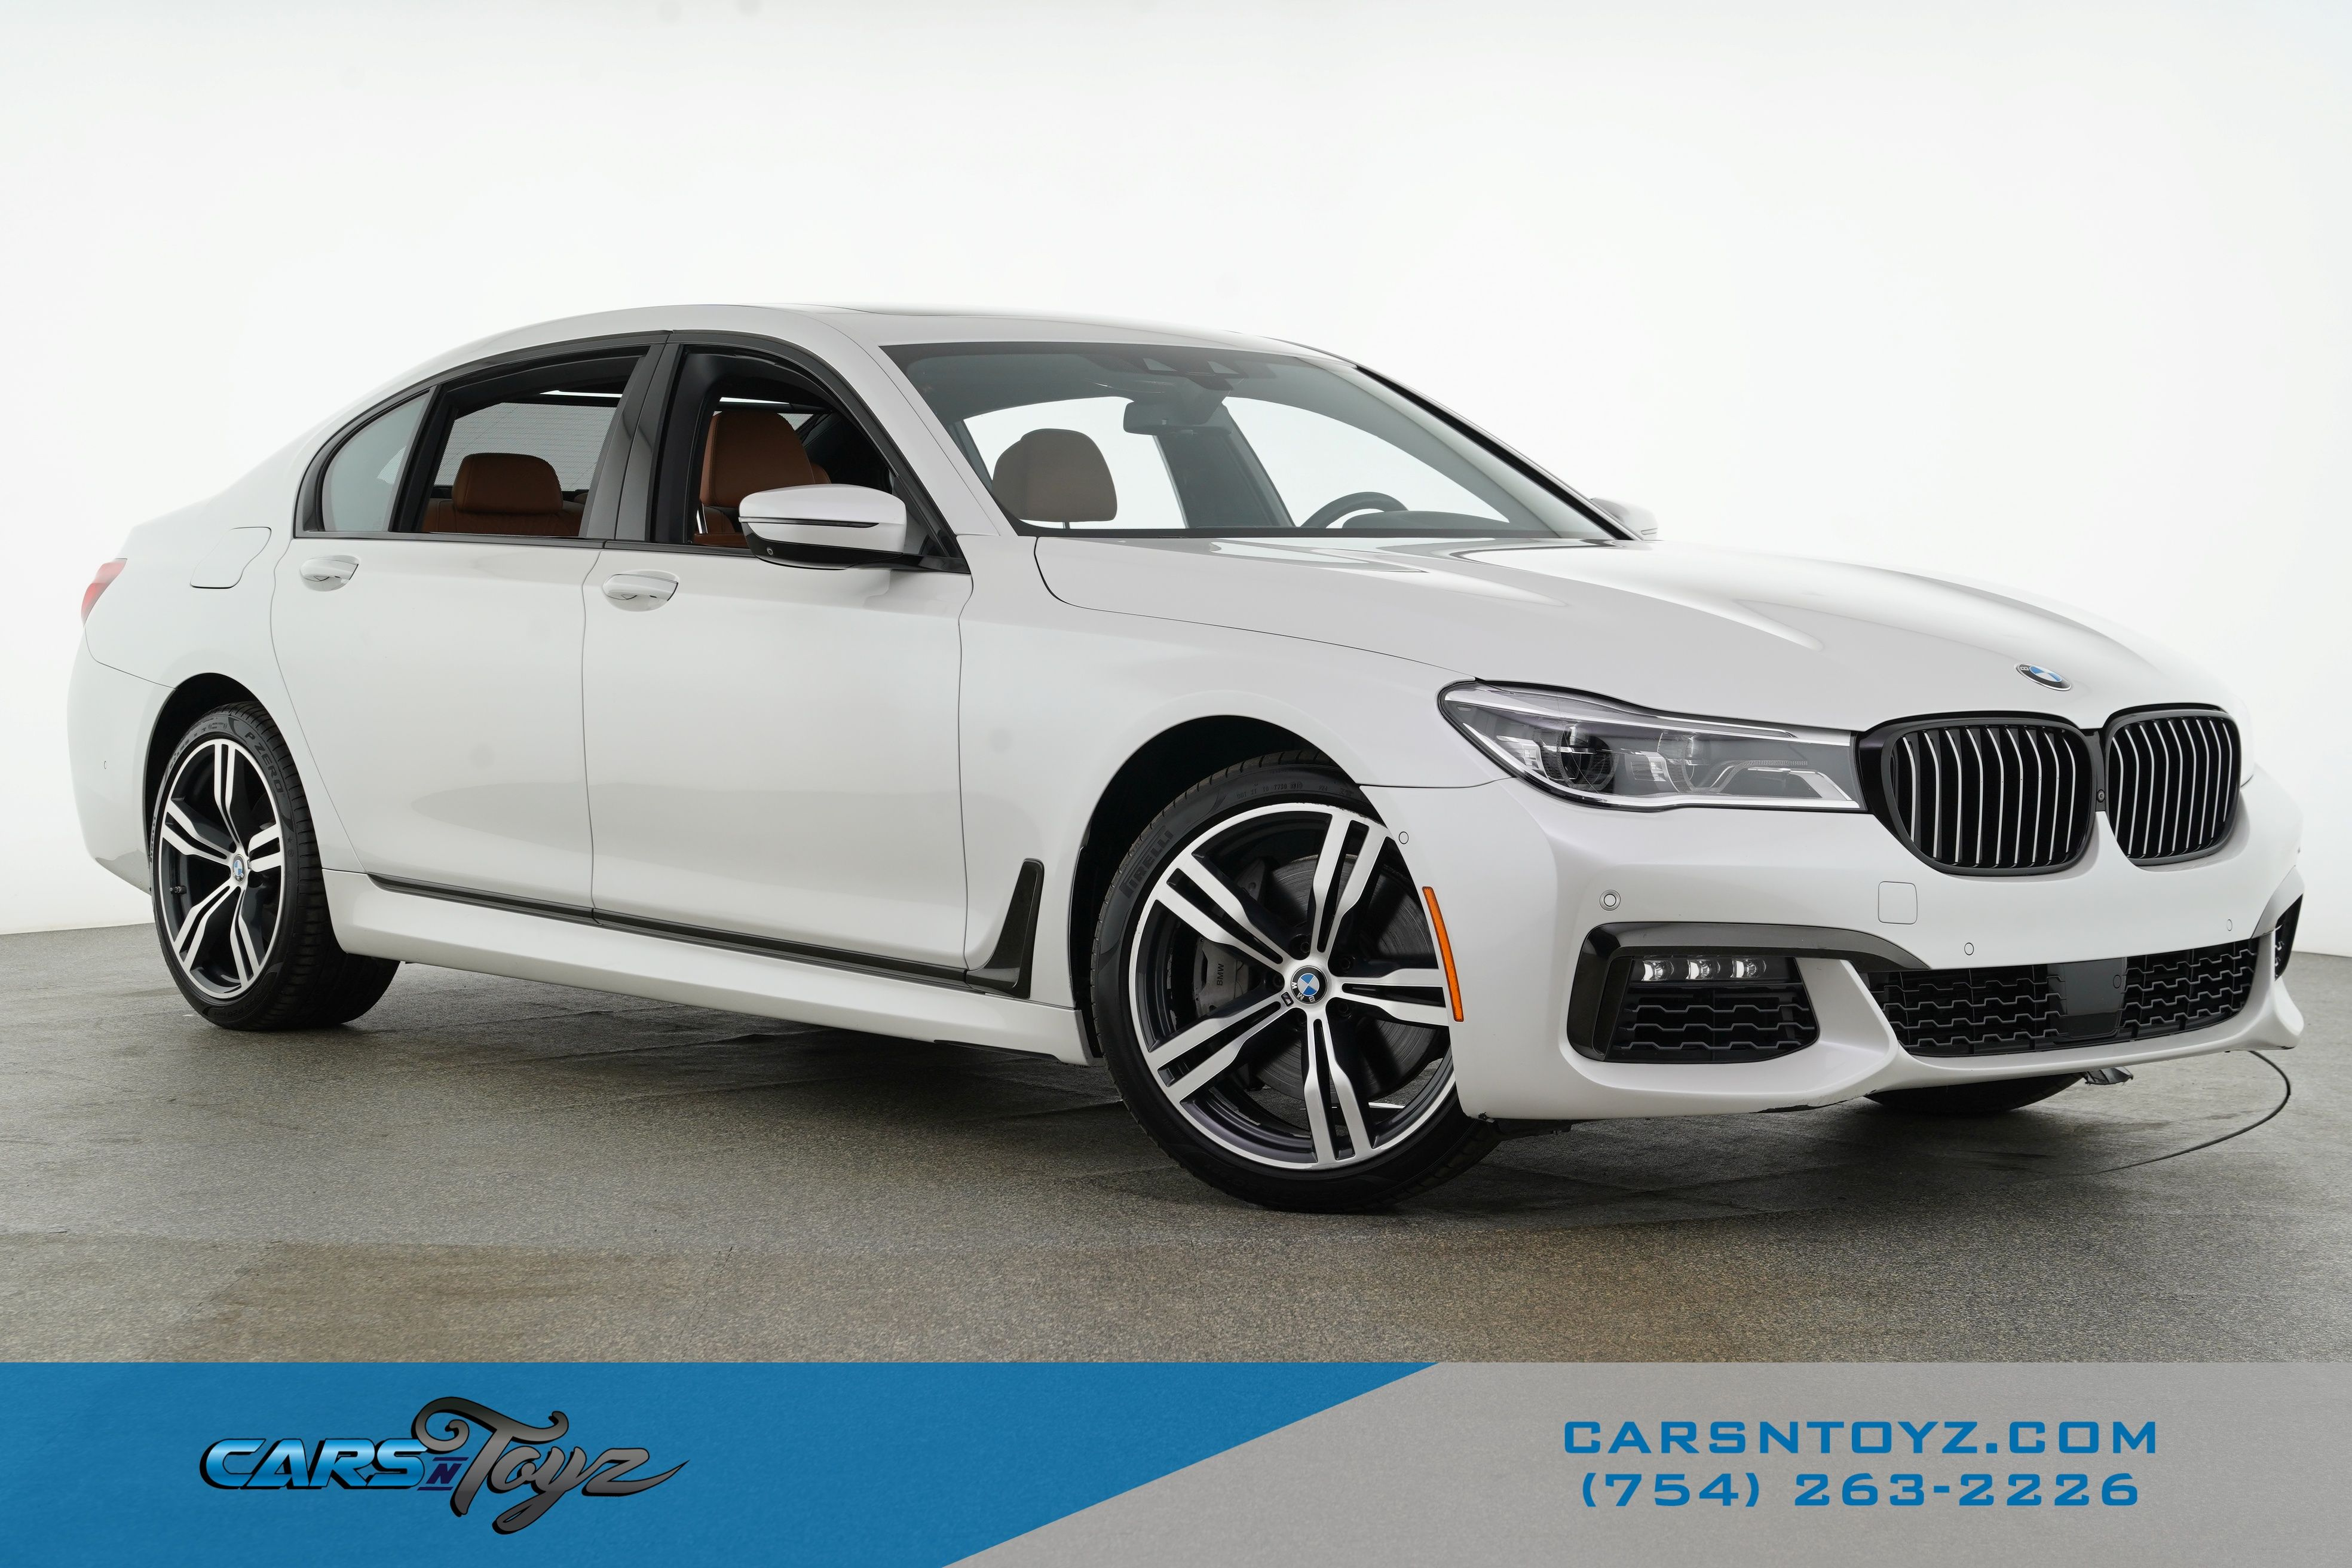 2018 BMW 7 Series 750i Rear Wheel Drive Sedan 4 Dr.